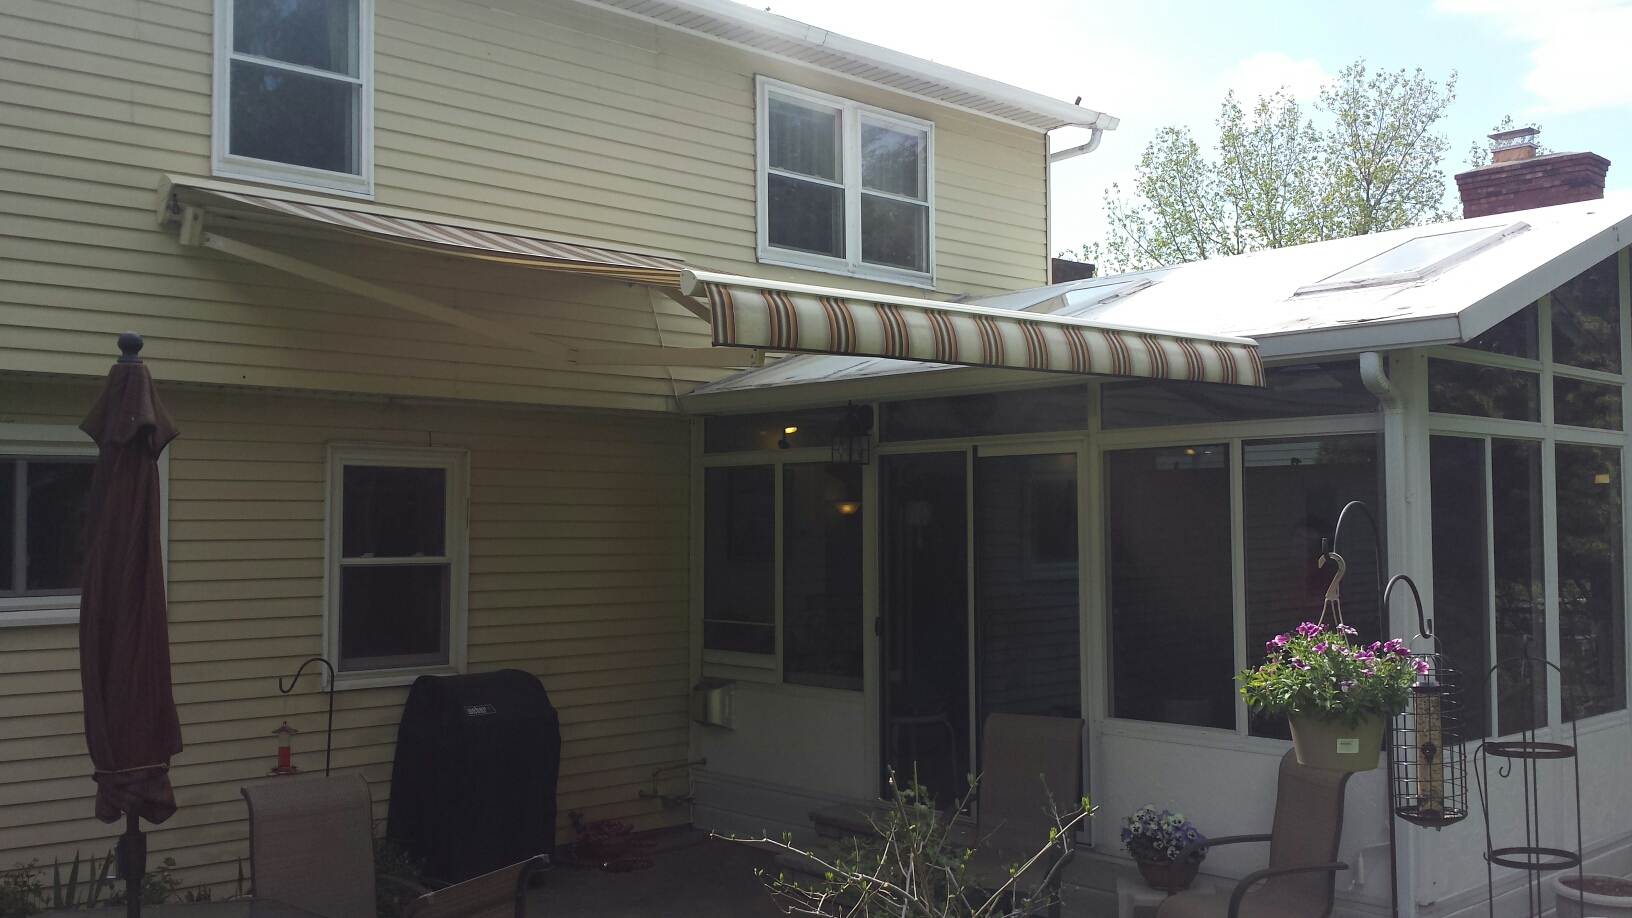 Manlius, NY - Another happy customer with his new awning